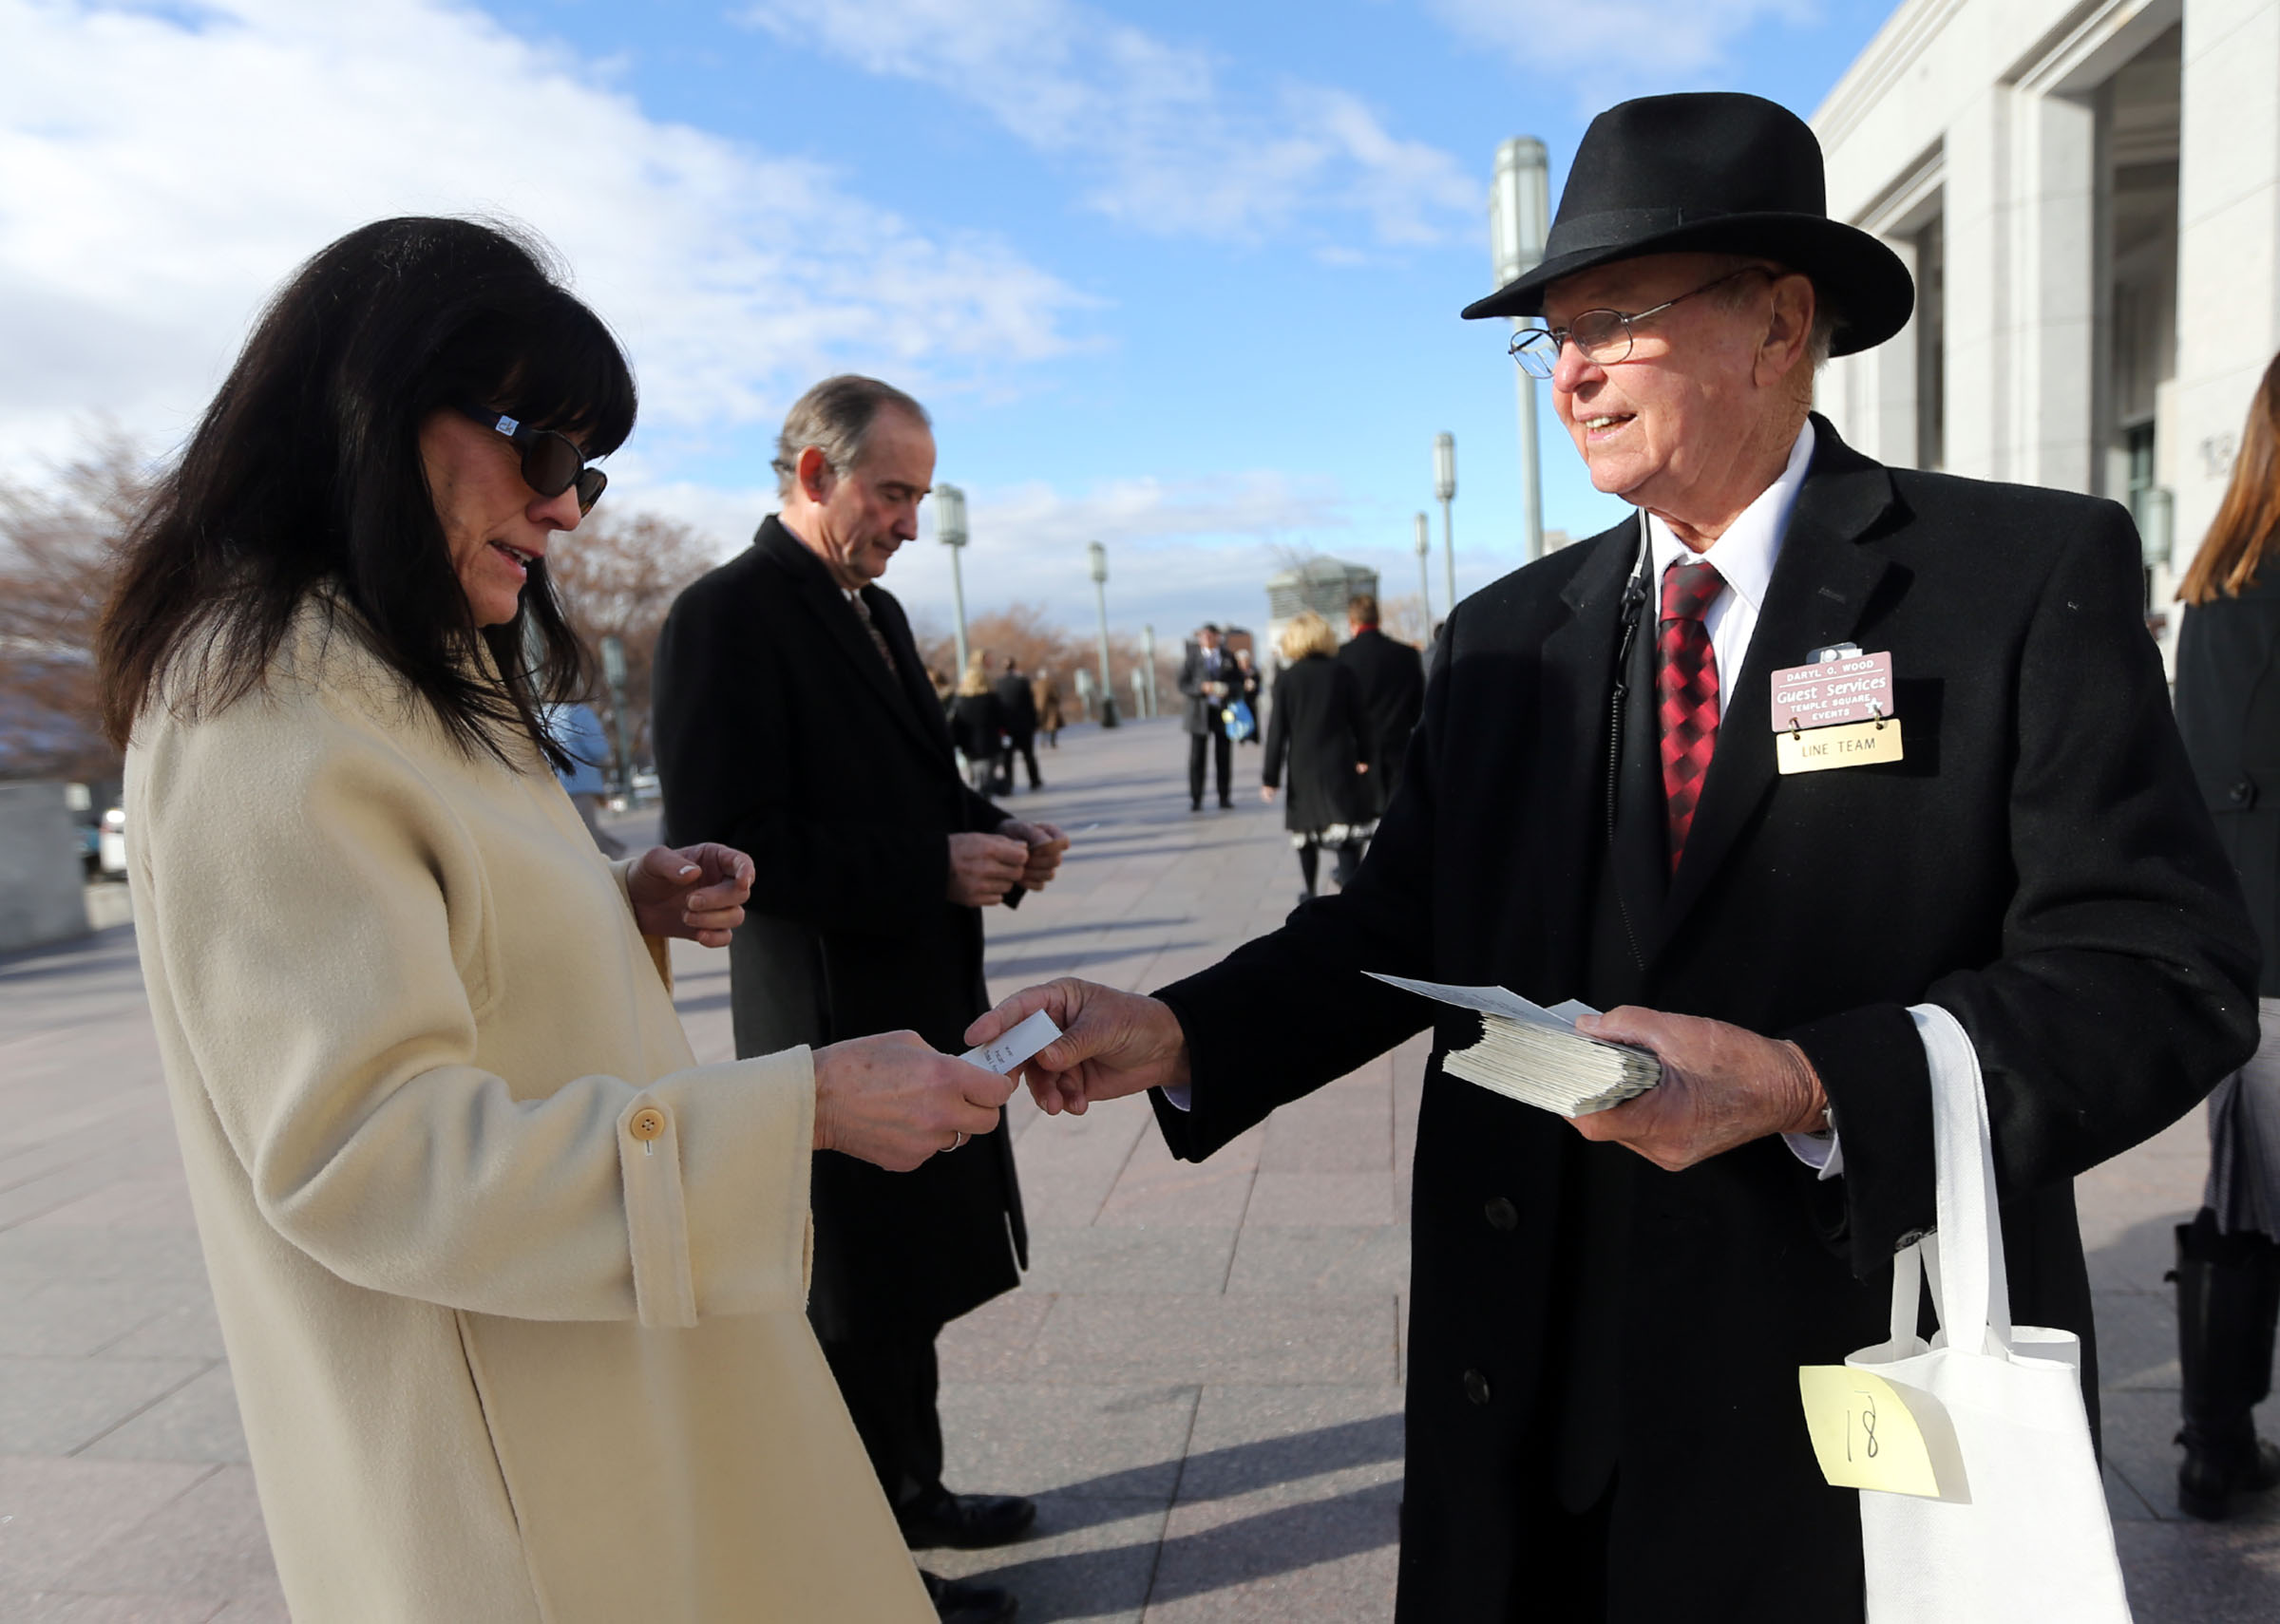 Lynn Winkler gets a ticket from Daryl O. Wood for President Thomas S. Monson's funeral at the Conference Center in Salt Lake City on Friday, Jan. 12, 2018.